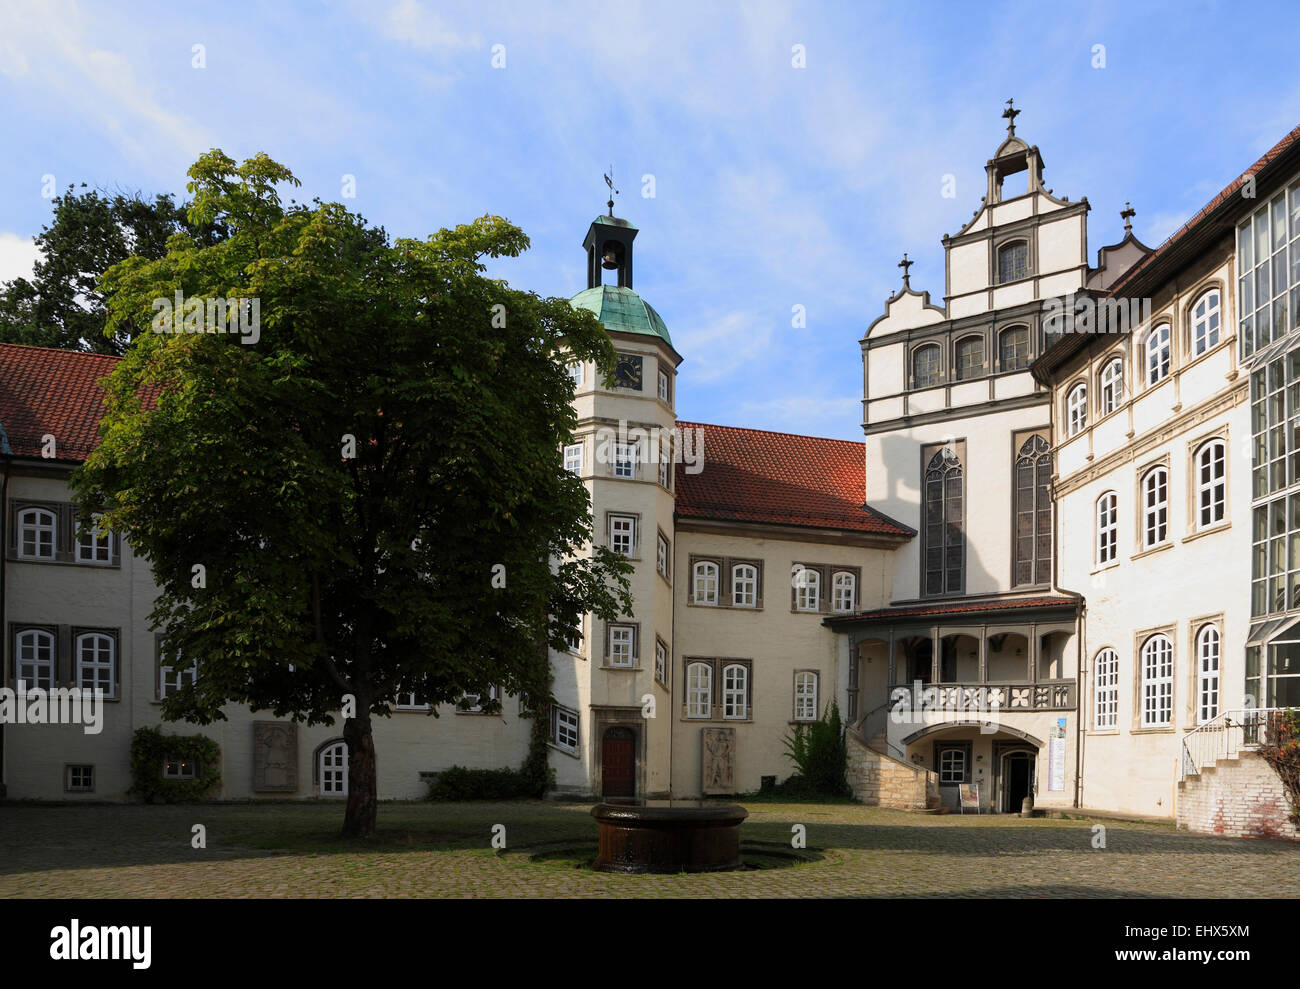 Castle Gifhorn,Lower Saxony, Germany, Europe - Stock Image